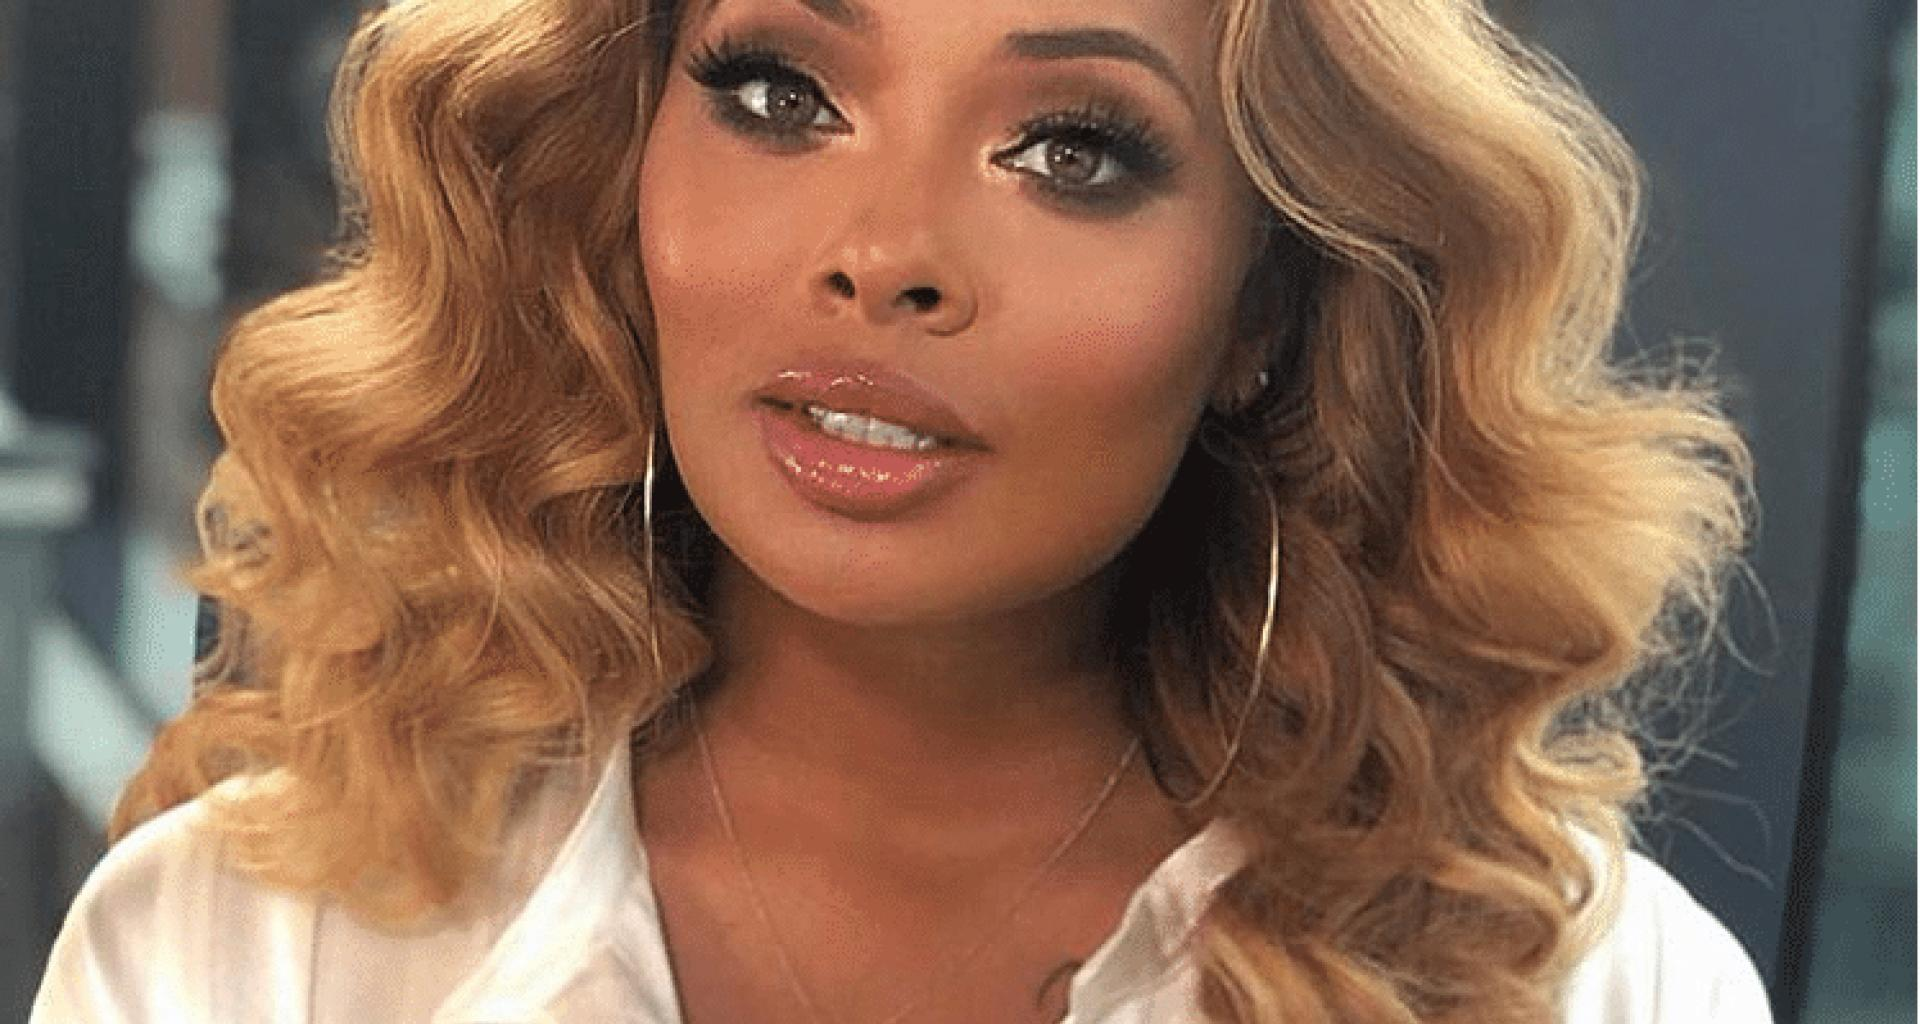 Eva Marcille Shares A Heartbreaking Message On Her IG Account